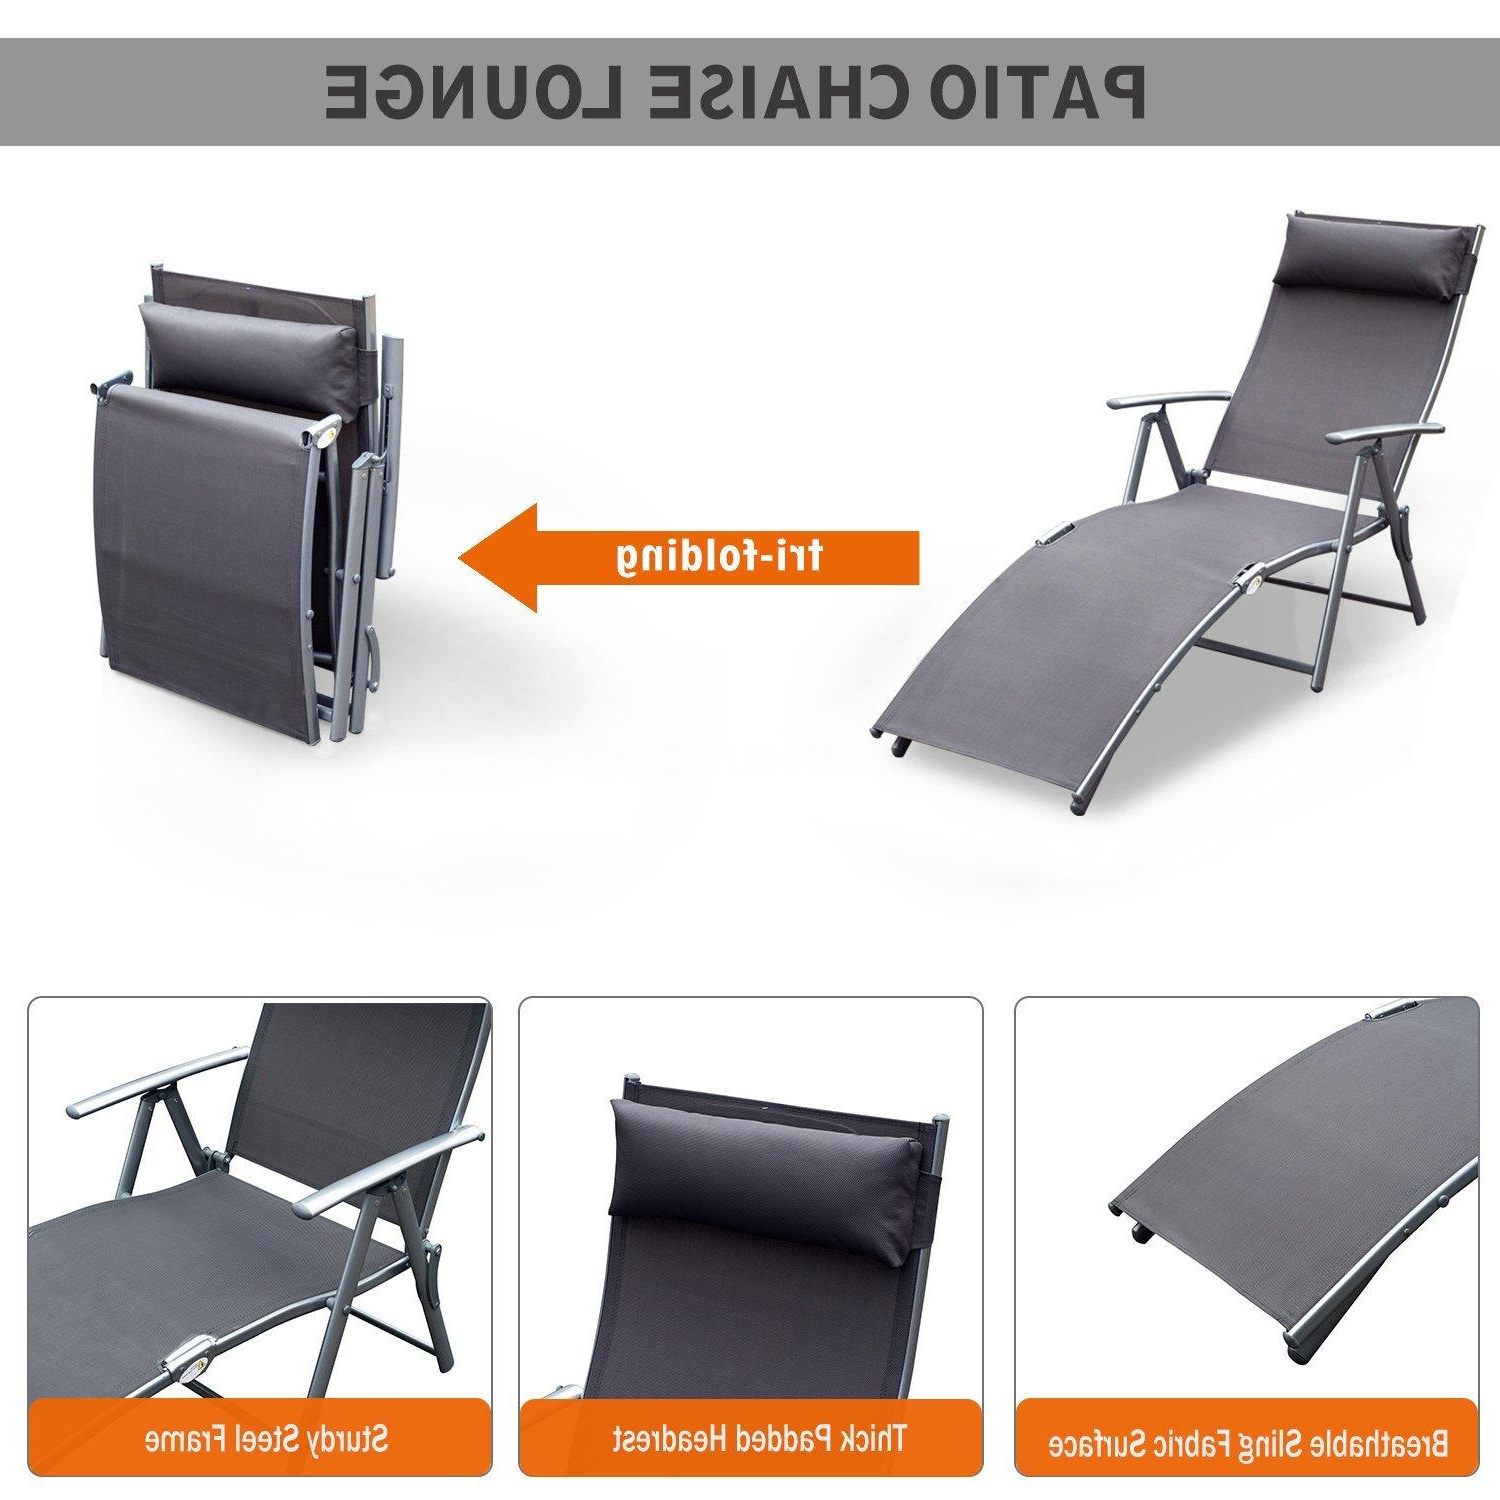 Details About Steel Sling Fabric Outdoor Folding Chaise Lounge Chair  Recliner – Grey K5C3 With Well Known Steel Sling Fabric Outdoor Folding Chaise Lounges (View 2 of 25)